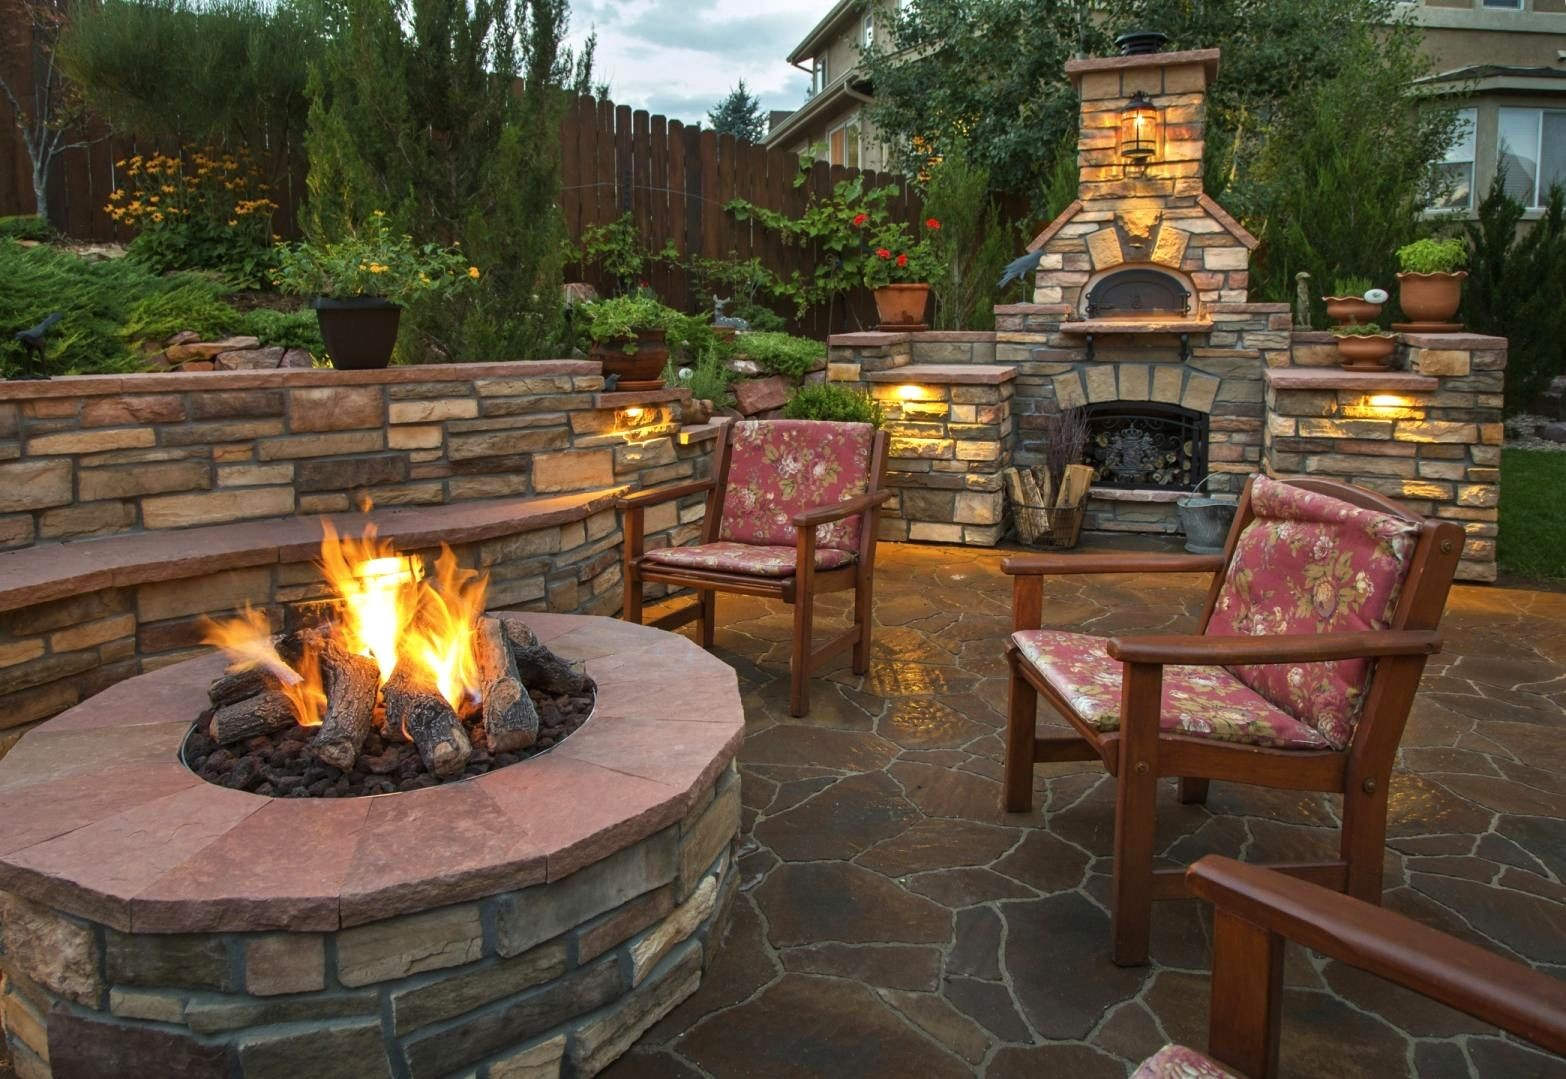 Backyard Landscaping Ideas With Fire Pit The Garden Inspirations for 15 Smart Designs of How to Improve Backyard Landscaping Ideas With Fire Pit